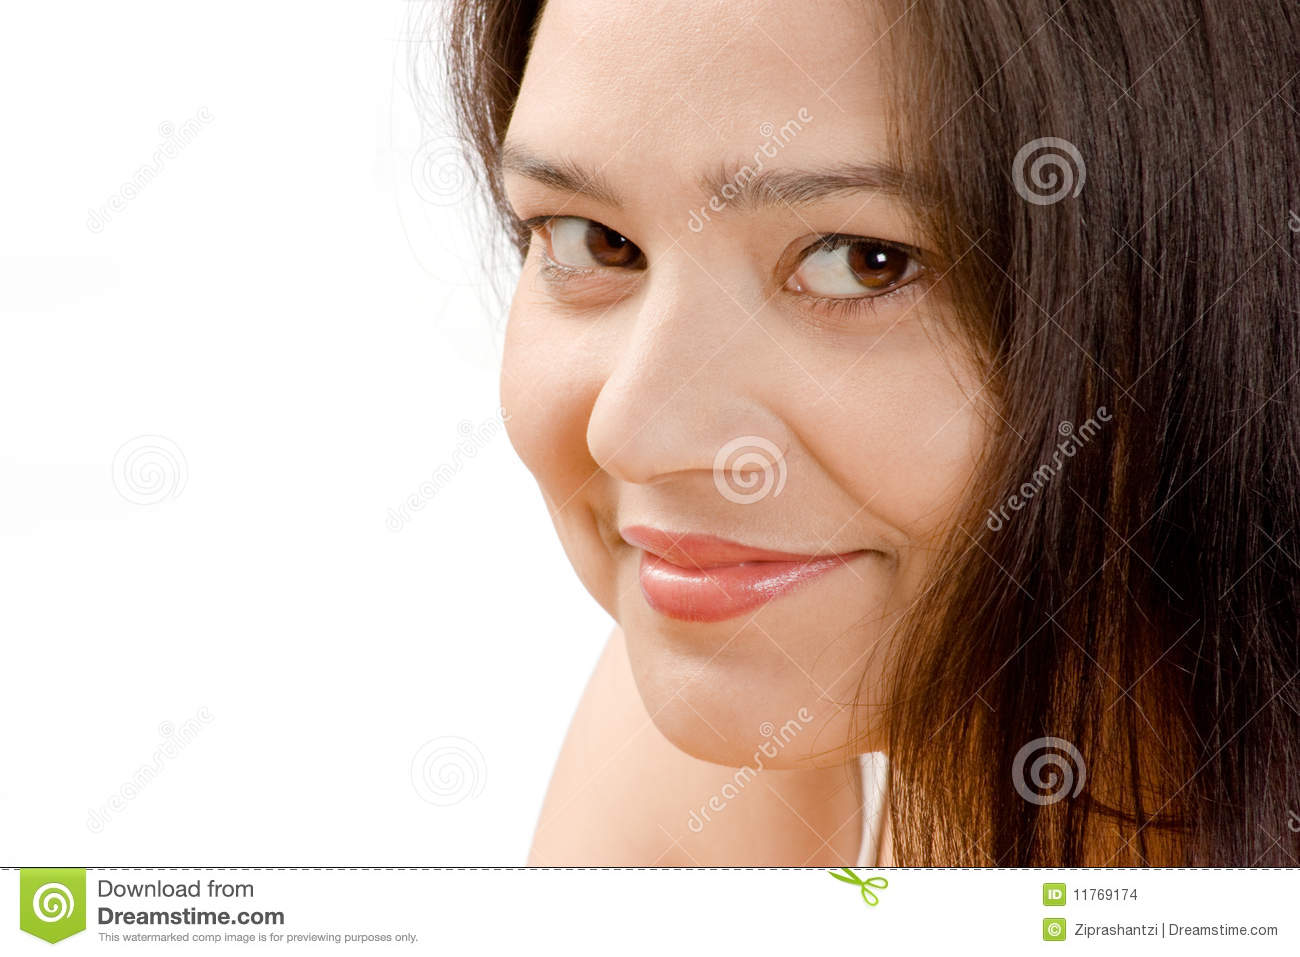 Shy Smile Of Beautiful Indian Women Stock Images   Image  11769174